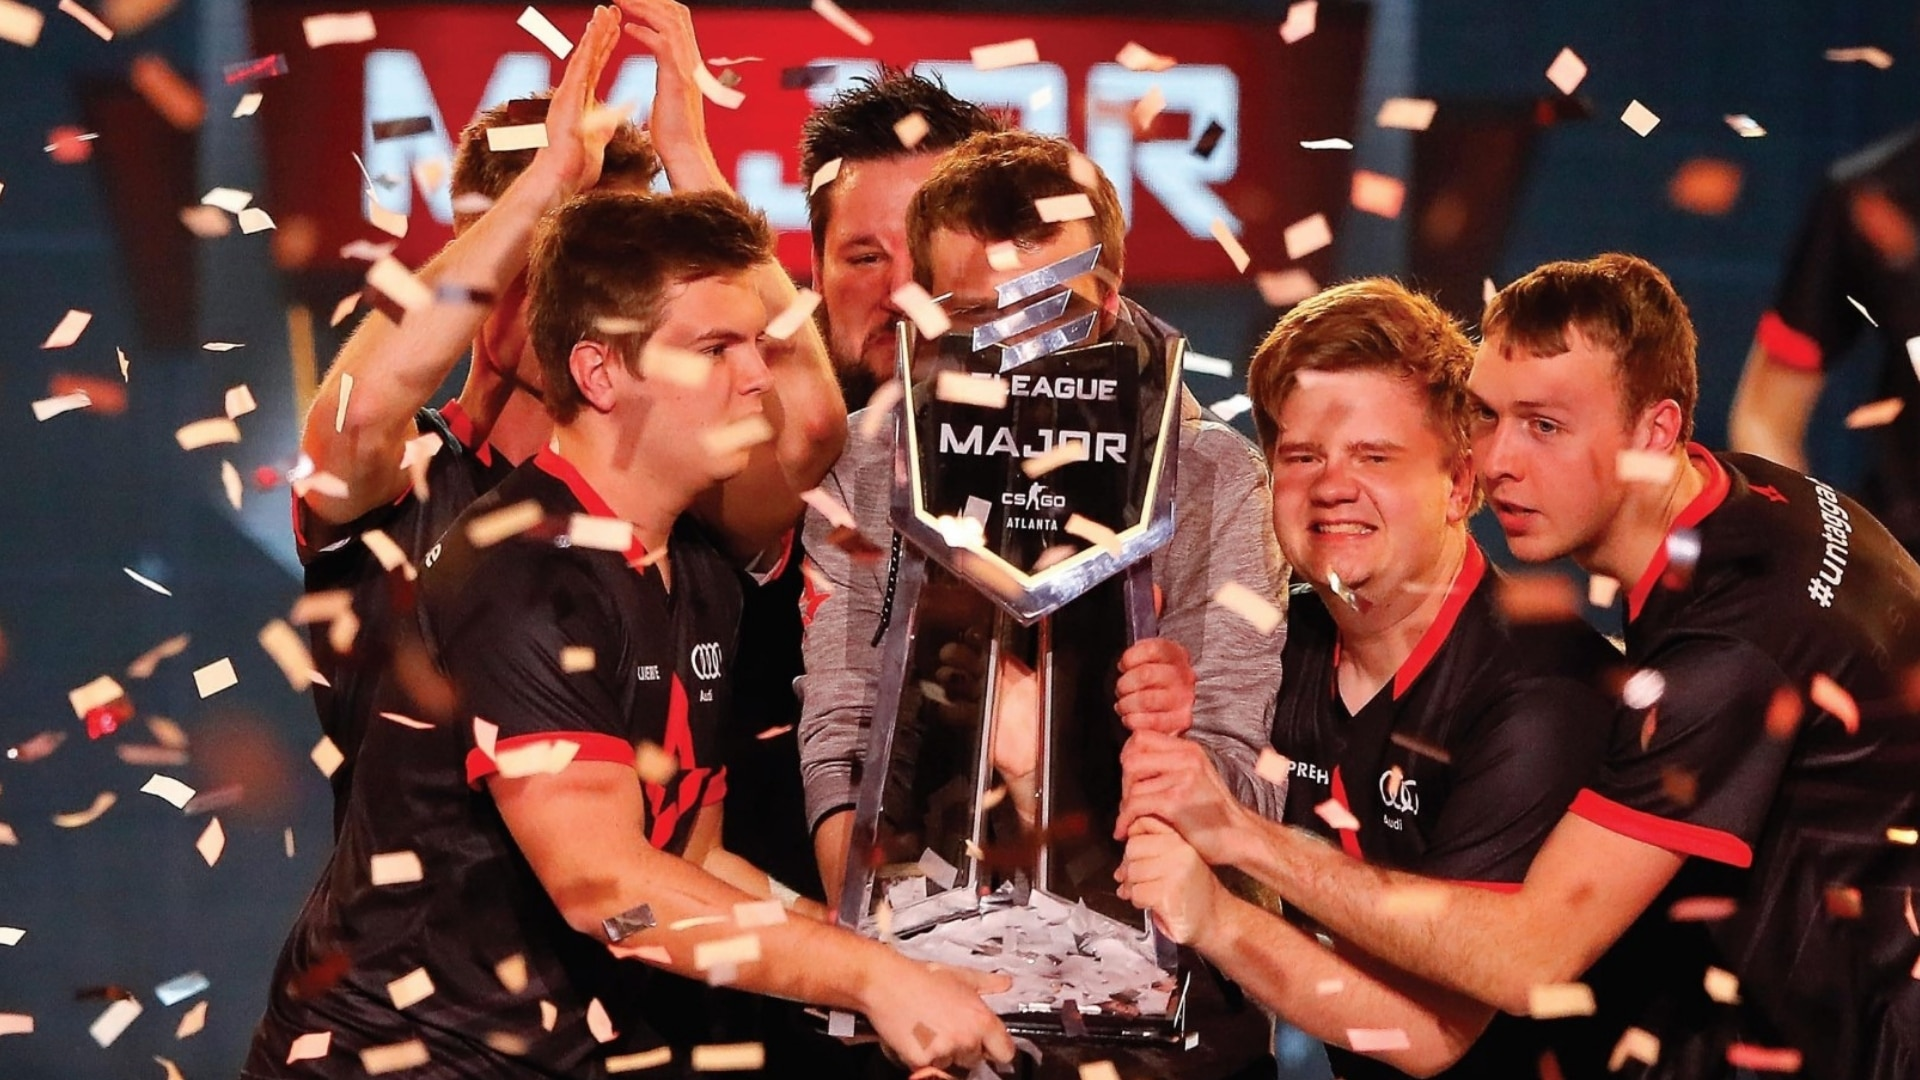 Esportens danske helte, carlsen, gode bøger til børn, børnebøger, lindhardt og ringhof, Astralis, astralis, Jacob Kofler, esport, gaming, counter strike, CS:GO, global offensive, major, north, dupreeh, gla1ve, zonic, bøger om coputerspil, computerspil, lan party, dota, league of legends